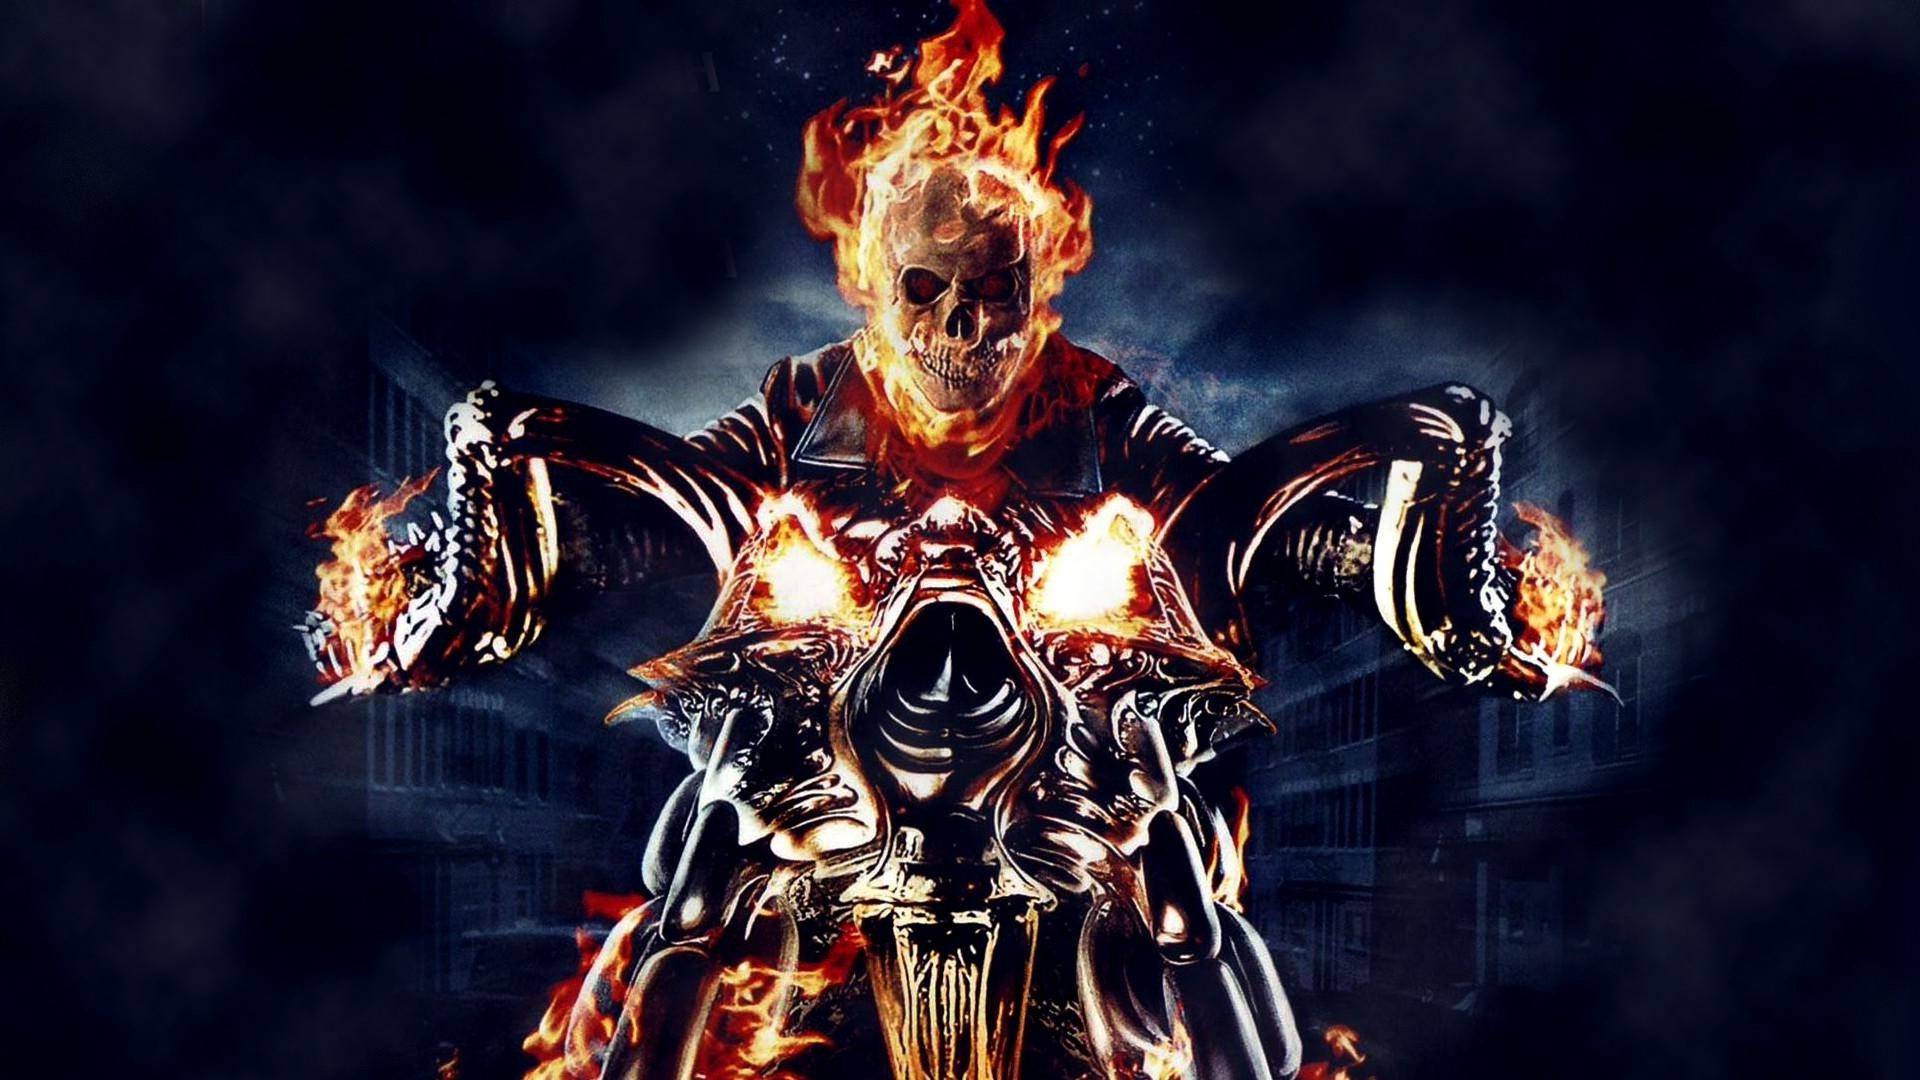 Ghost Rider Skull Fire Motorcycle Comics Graphic 1920x1080